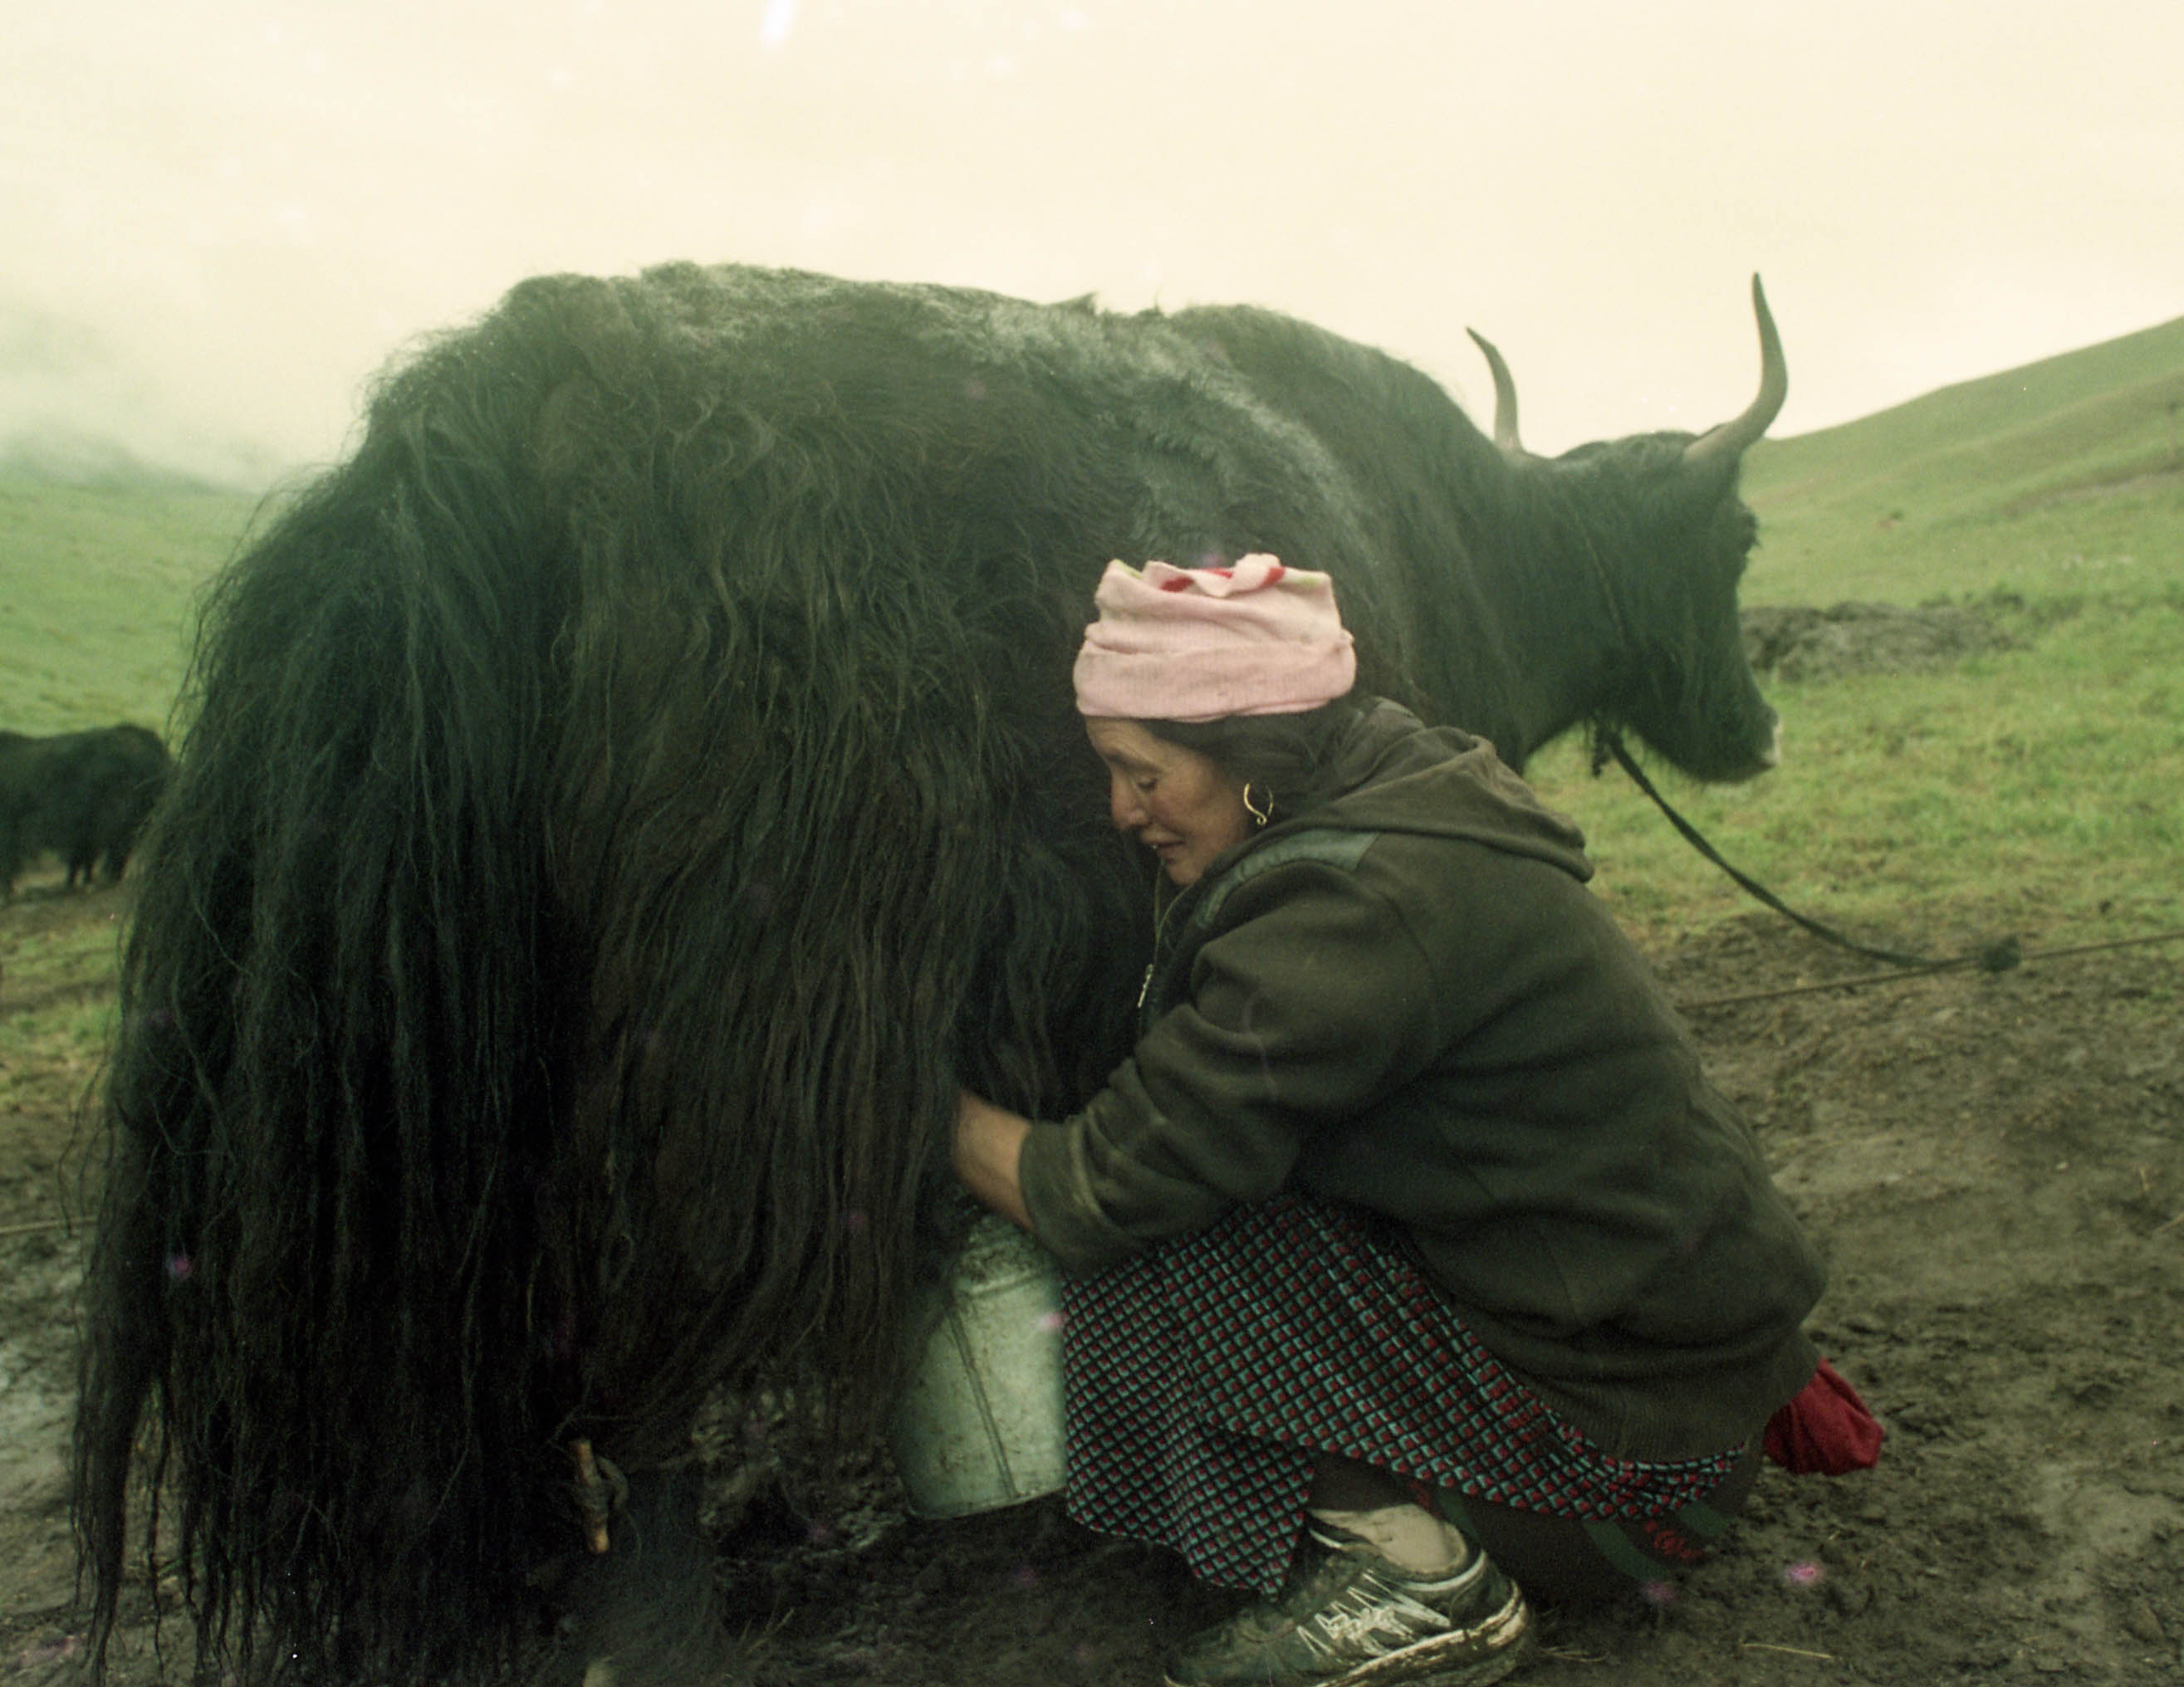 Dris not Yaks in Tibet